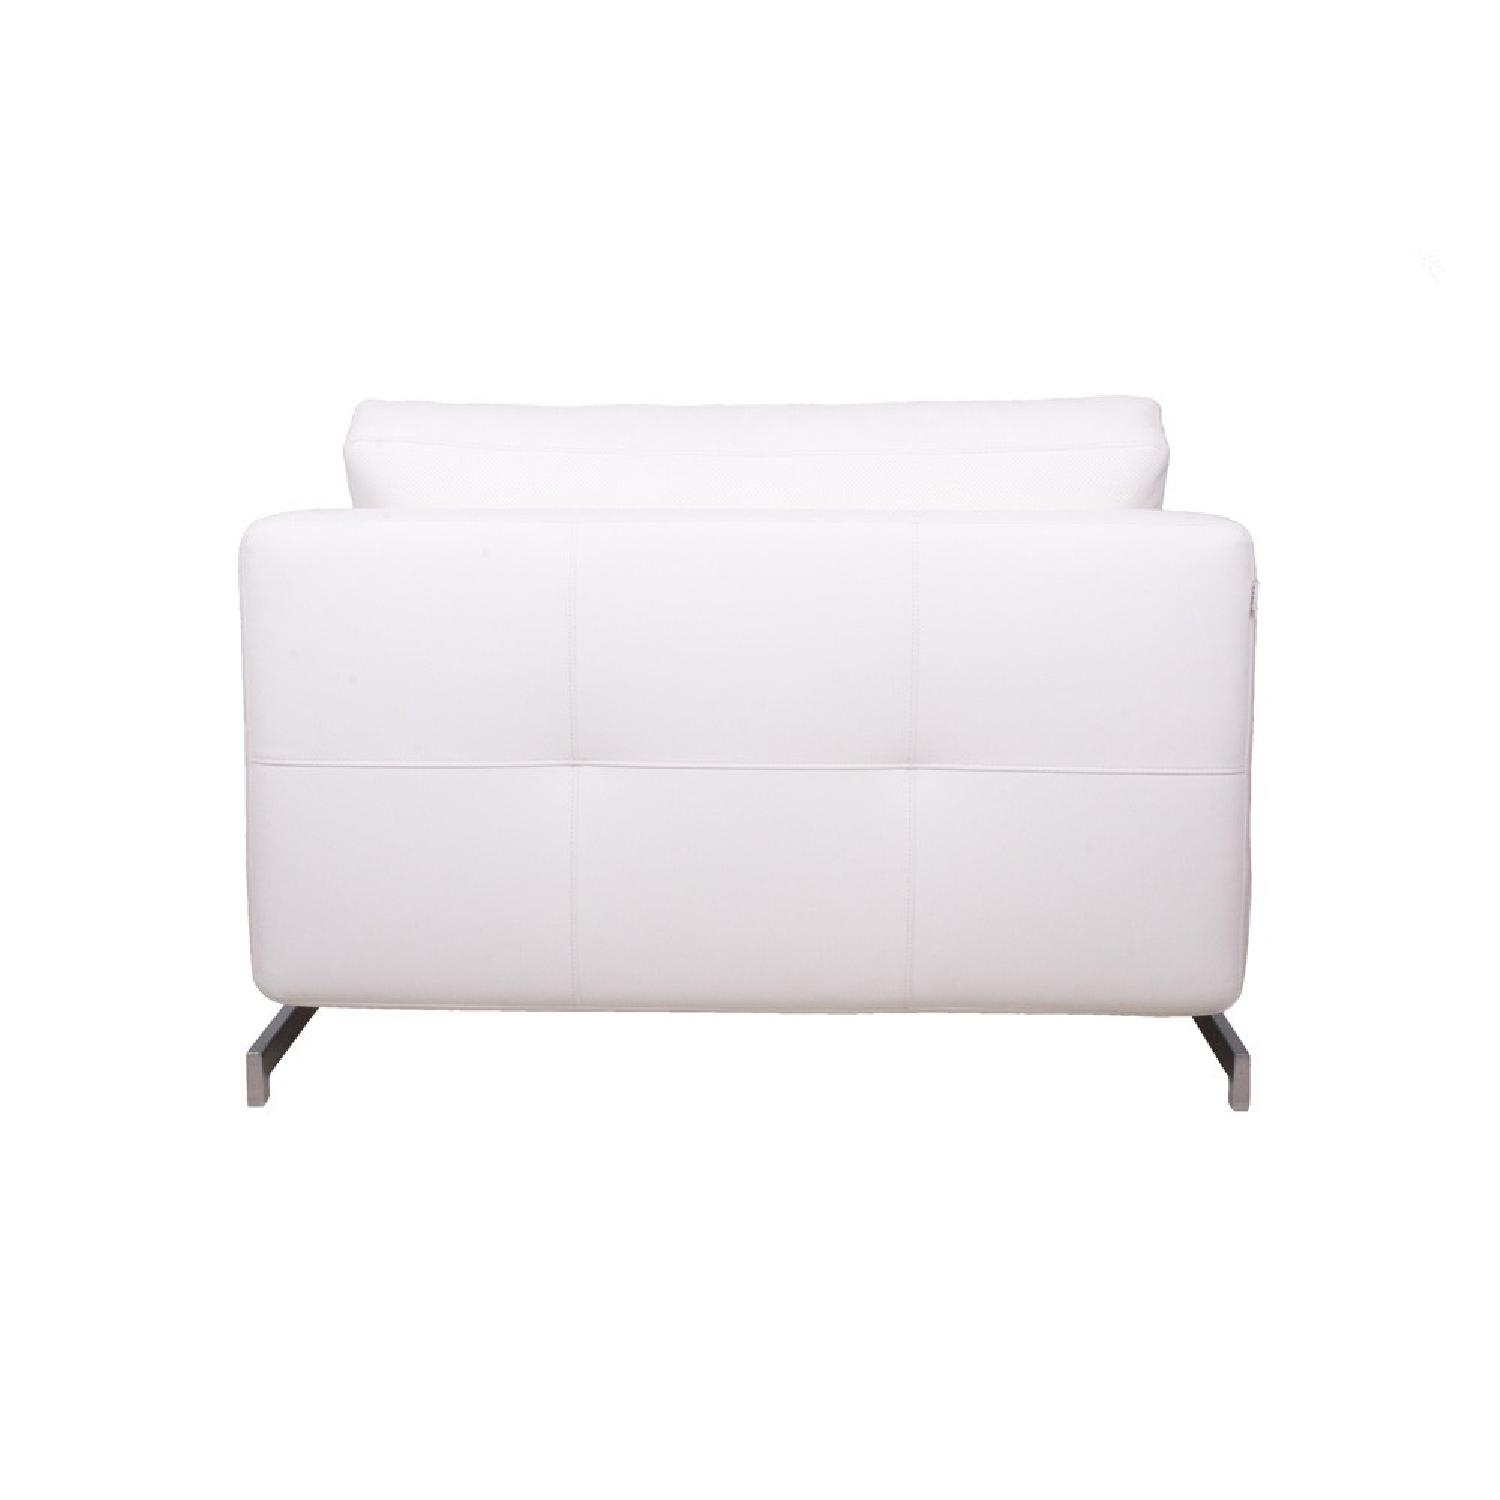 The Smart Sofa White JR Sofa Bed - image-2